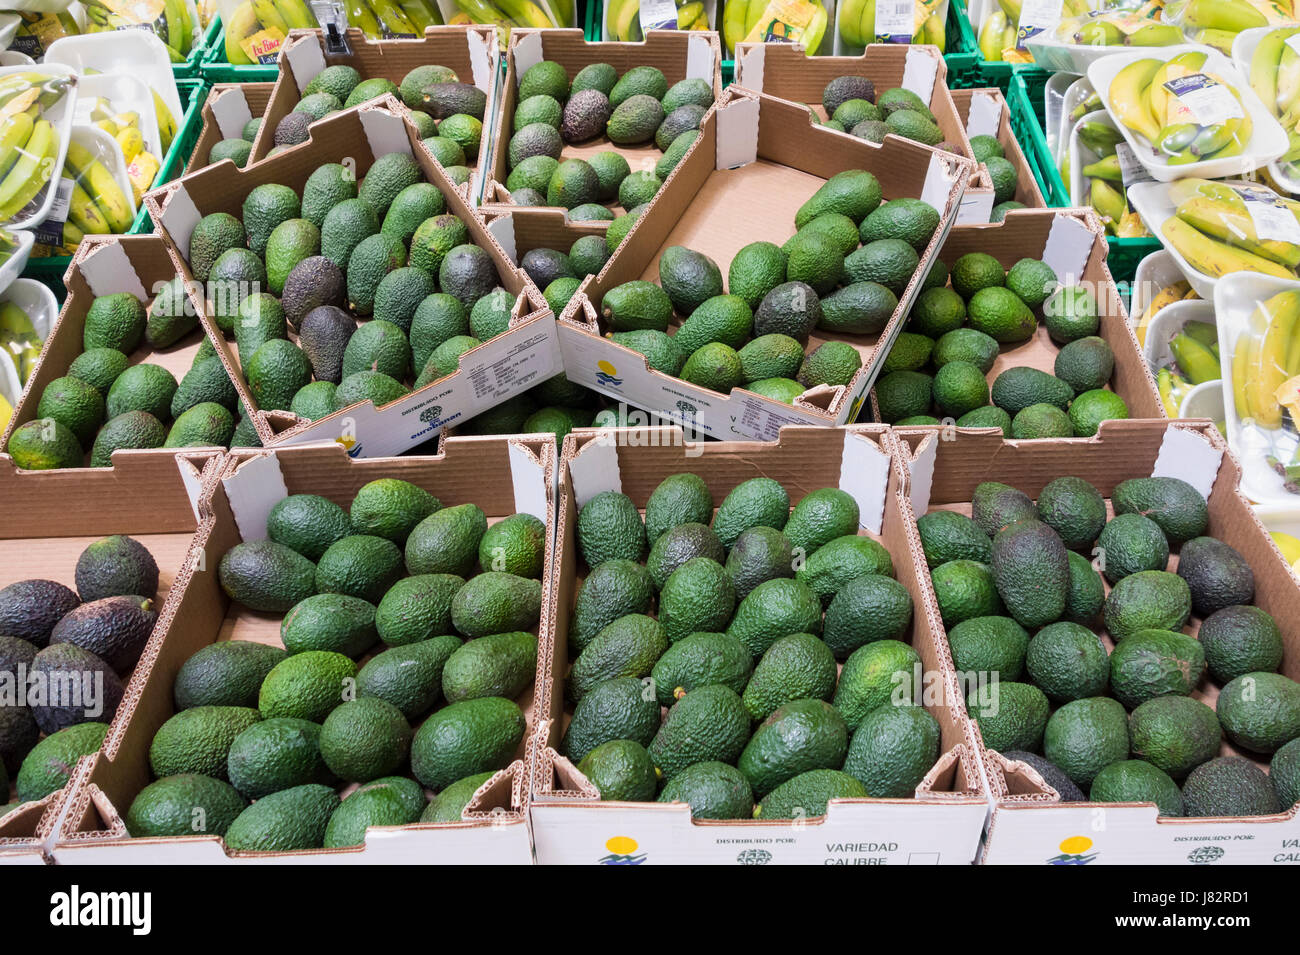 Avocados in supermarket on Gran Canaria. Locally grown. - Stock Image